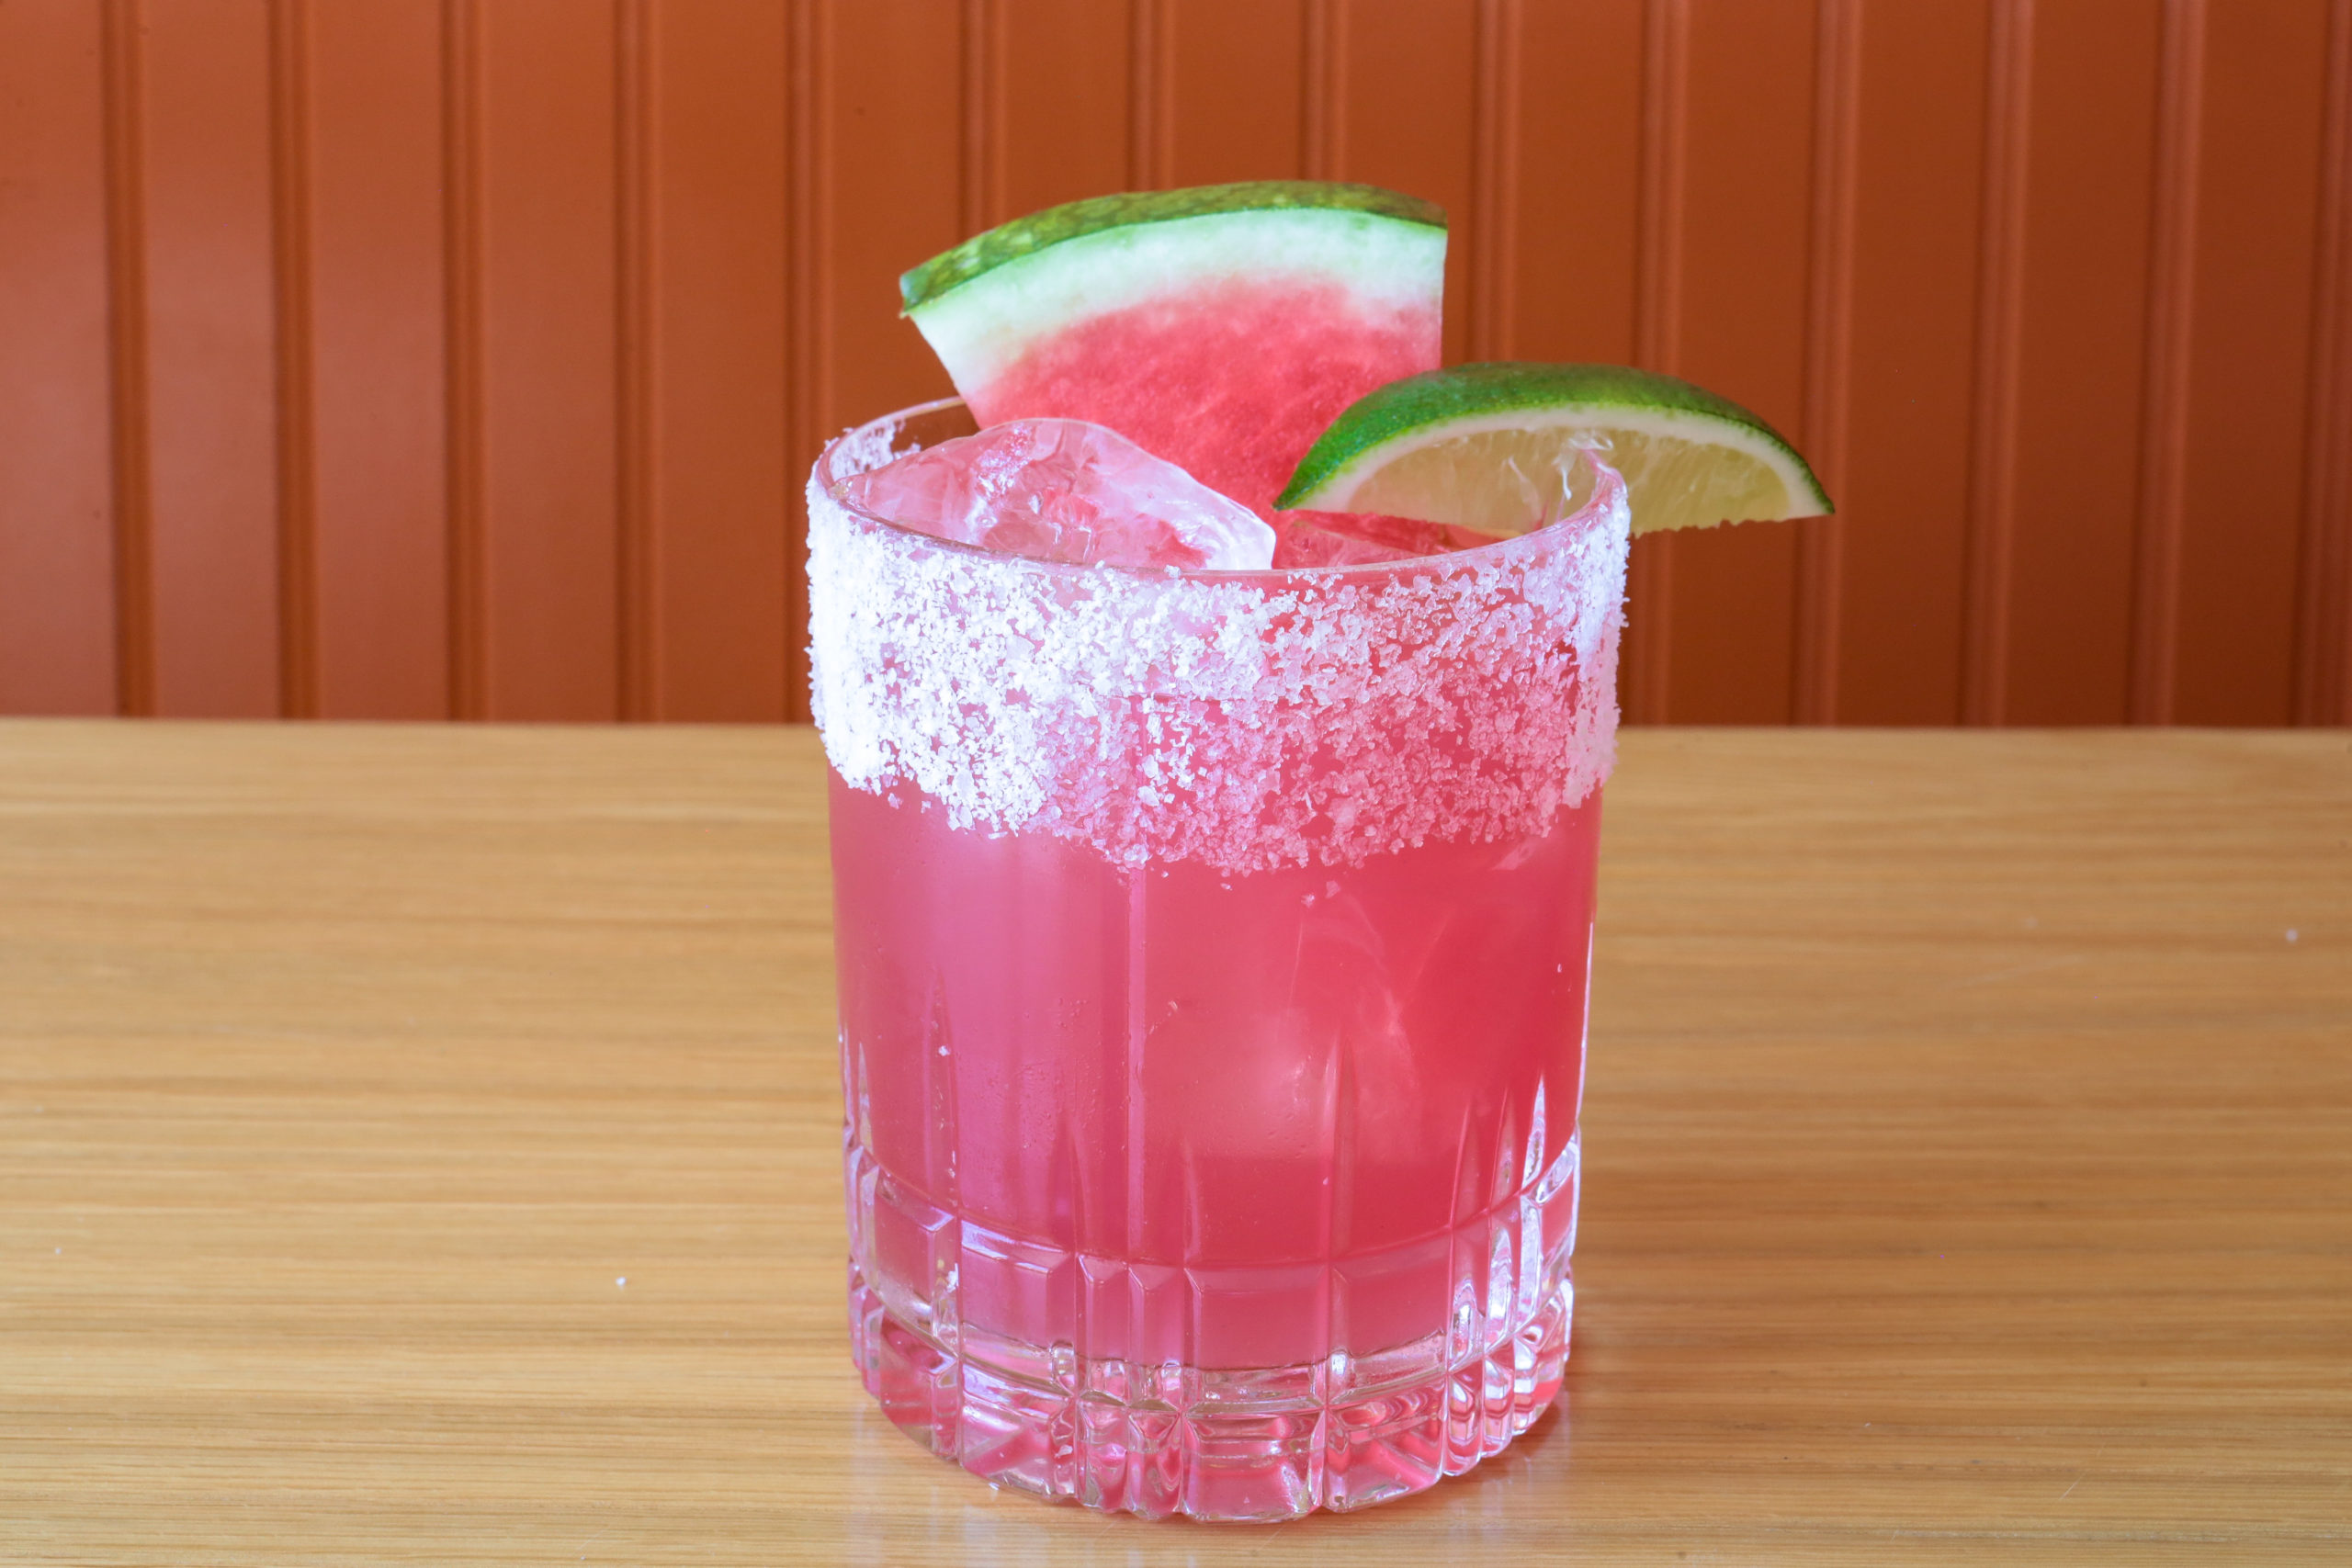 Margaritas and mojitos at Rita Cantina can be made from fresh fruit of your choice, including watermelon, passion fruit, cucumber, ginger and more.